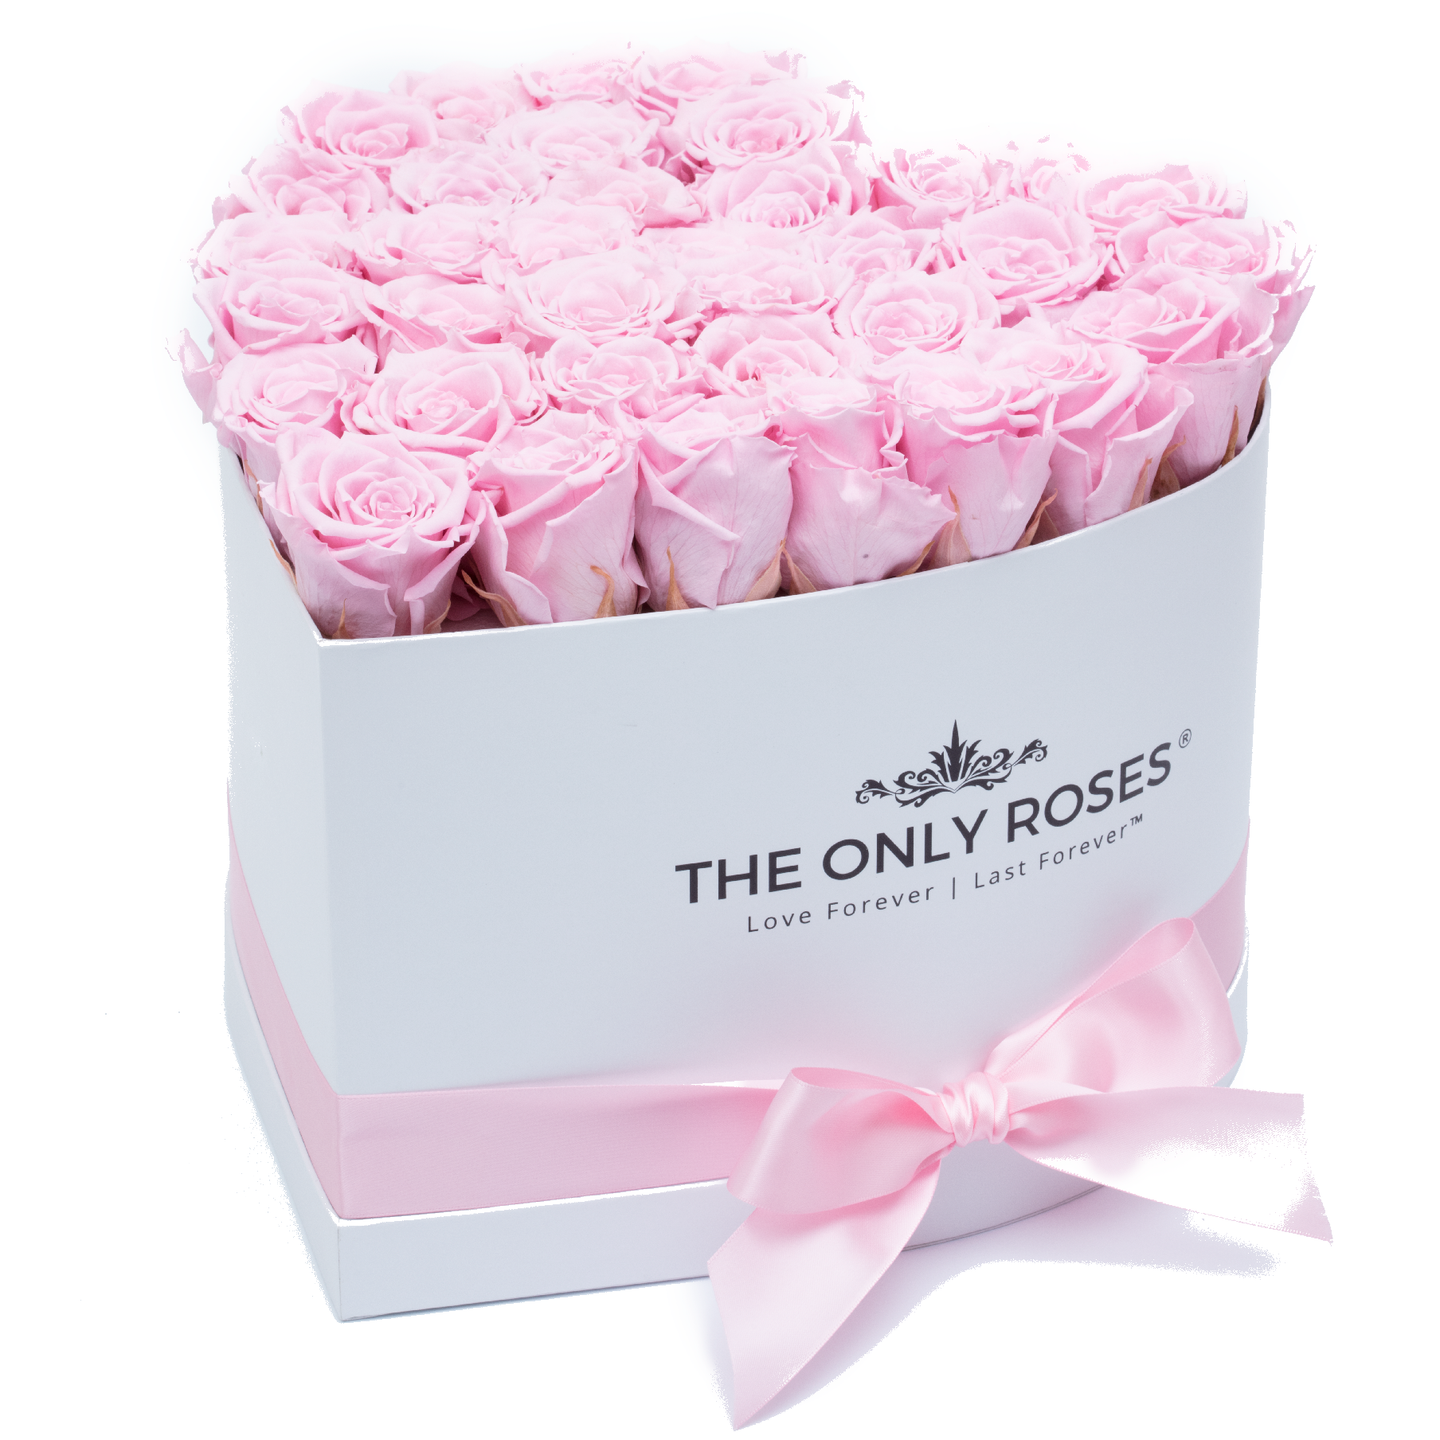 Light Pink Preserved Roses | Heart White Huggy Rose Box - The Only Roses